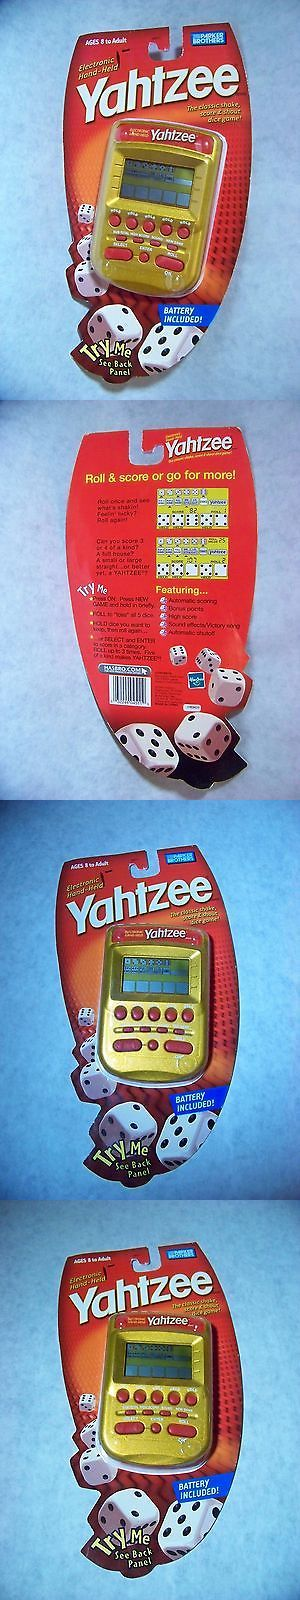 Electronic Games 2540: New Parker Brothers Yahtzee (2004) Electronic Handheld Game Gold And Red Sealed -> BUY IT NOW ONLY: $32.51 on eBay!